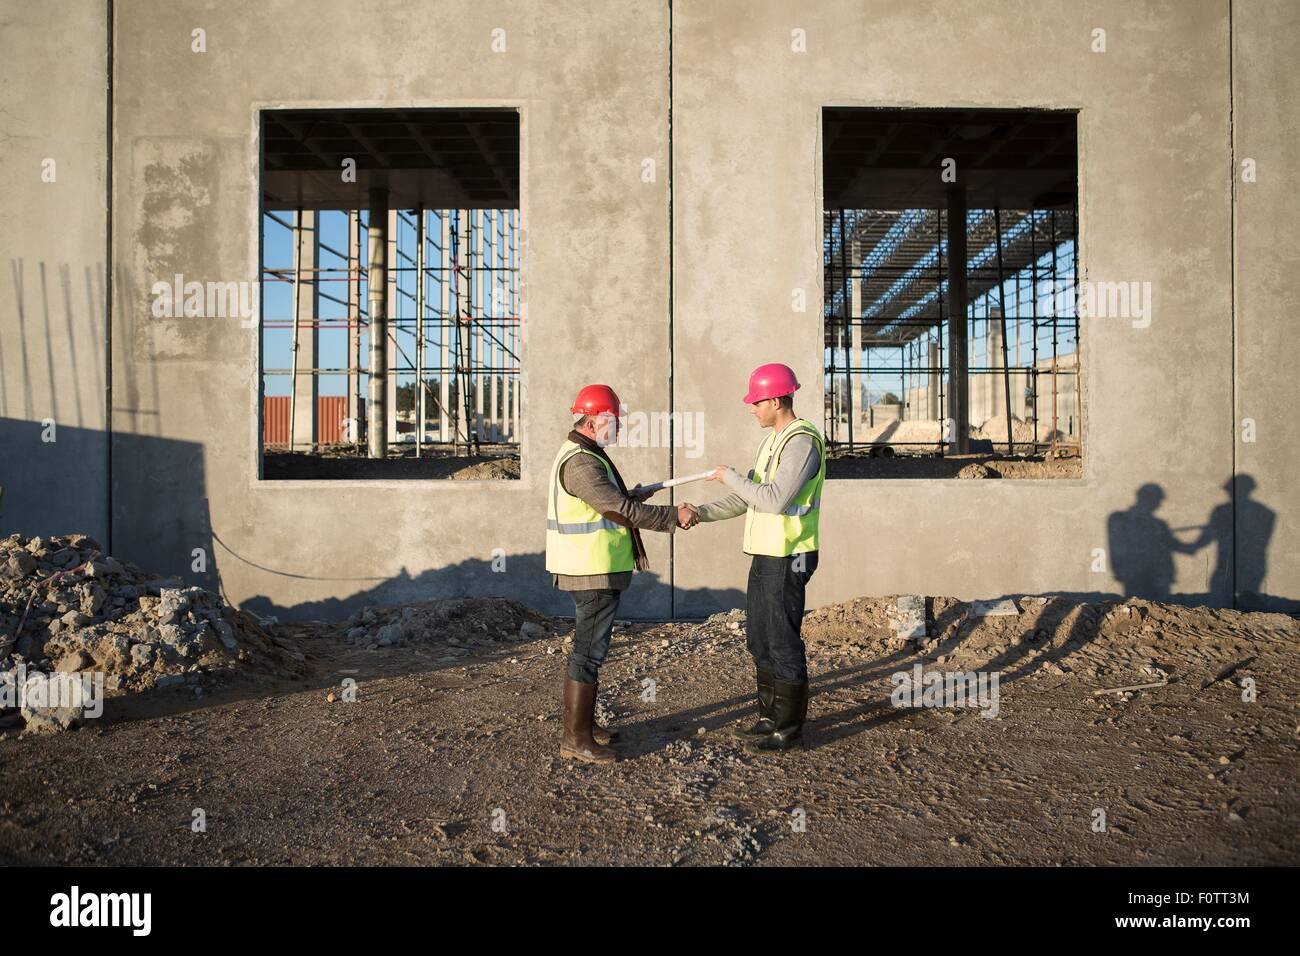 Architect and surveyor handing over blueprint on construction site architect and surveyor handing over blueprint on construction site malvernweather Images